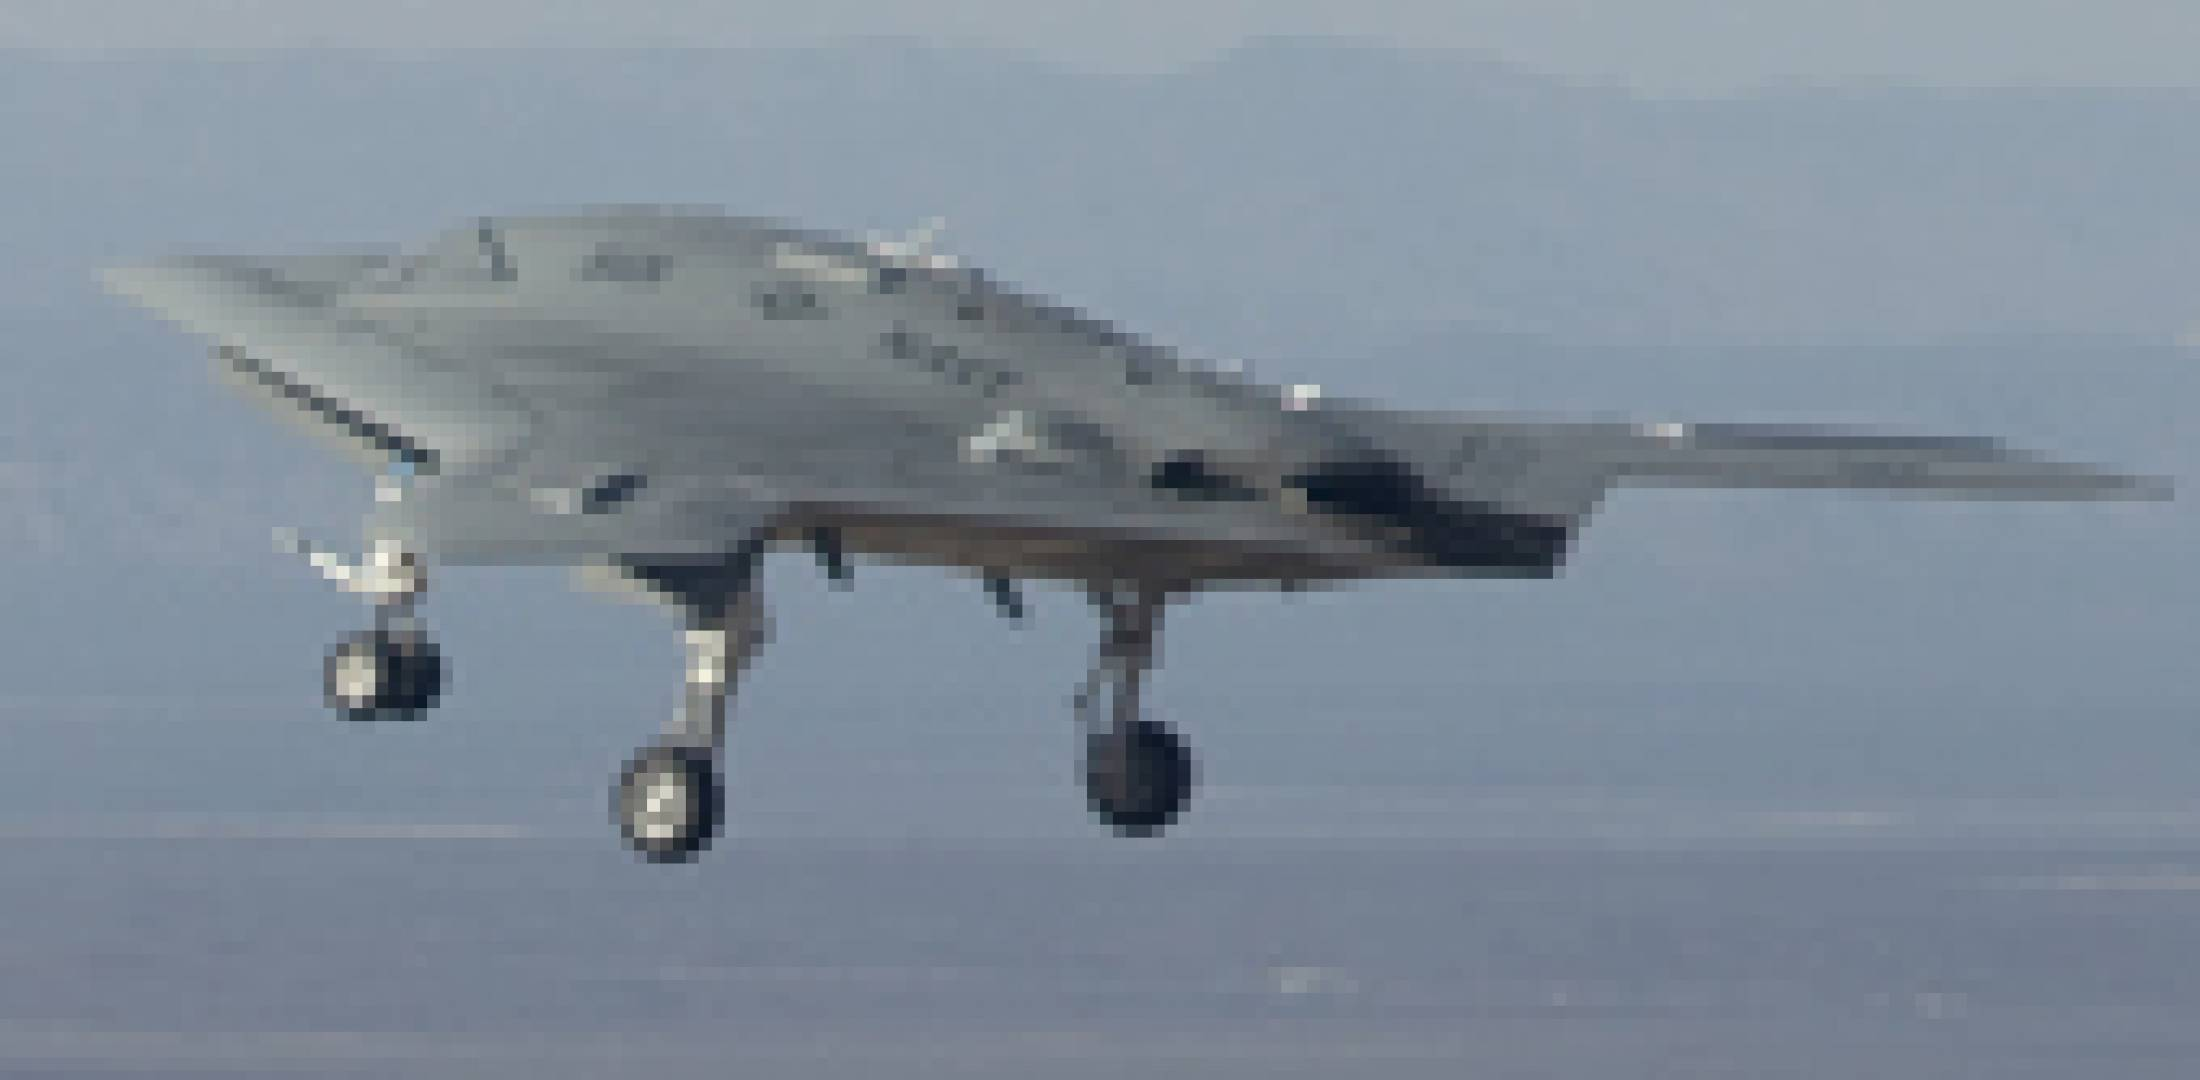 Northrop Grummnaπs X-47B demonstrator made its first flight on February 4....